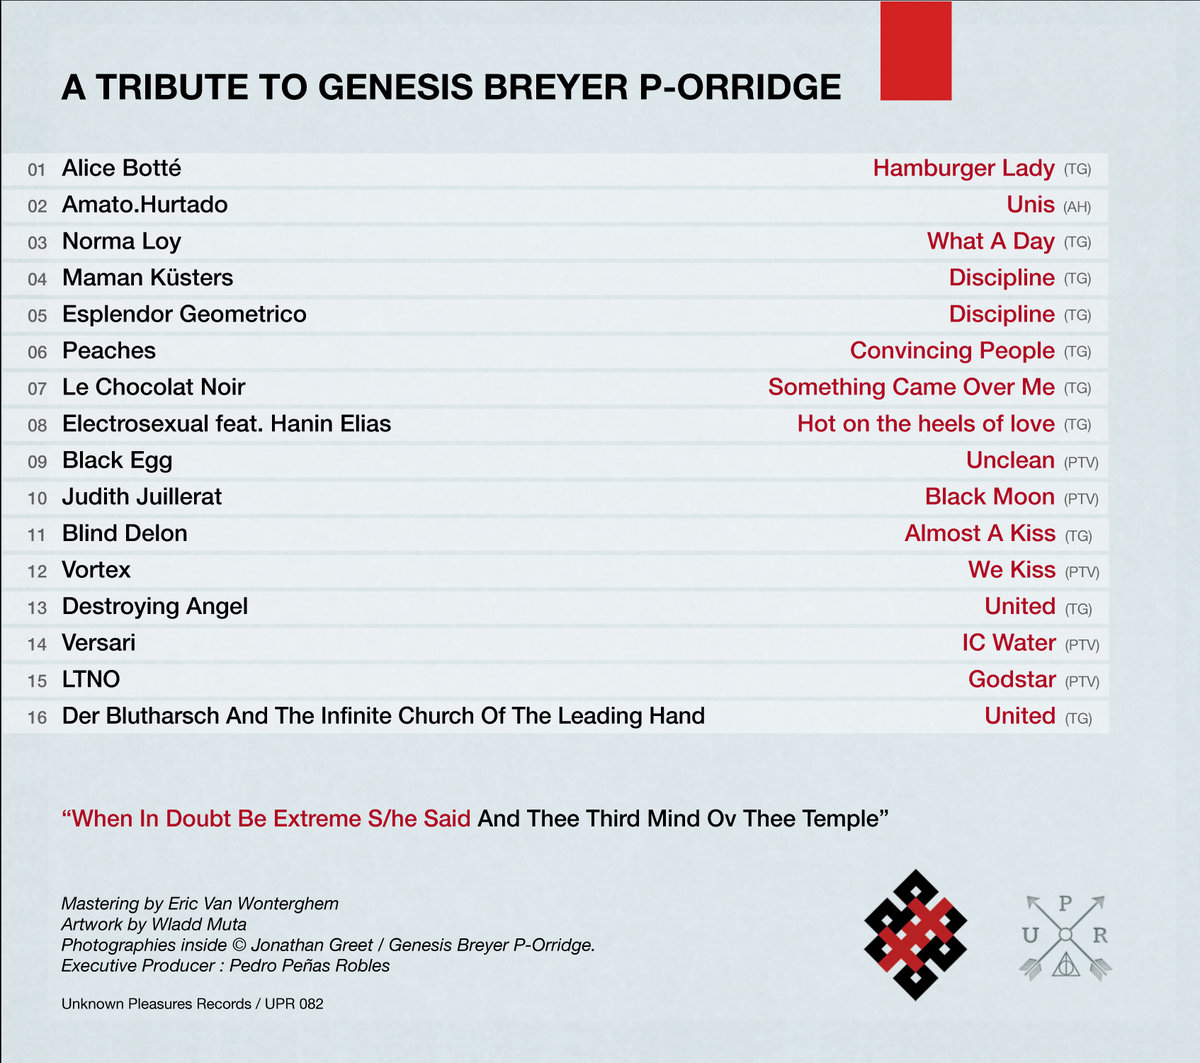 A tribute to genesis breyer p orridge upr082 unknown pleasures a benefit compilation for genesis p orridge musical pioneer cultural engineer wrecker of civilization anti pope of the temple ov psychic youth and also m4hsunfo